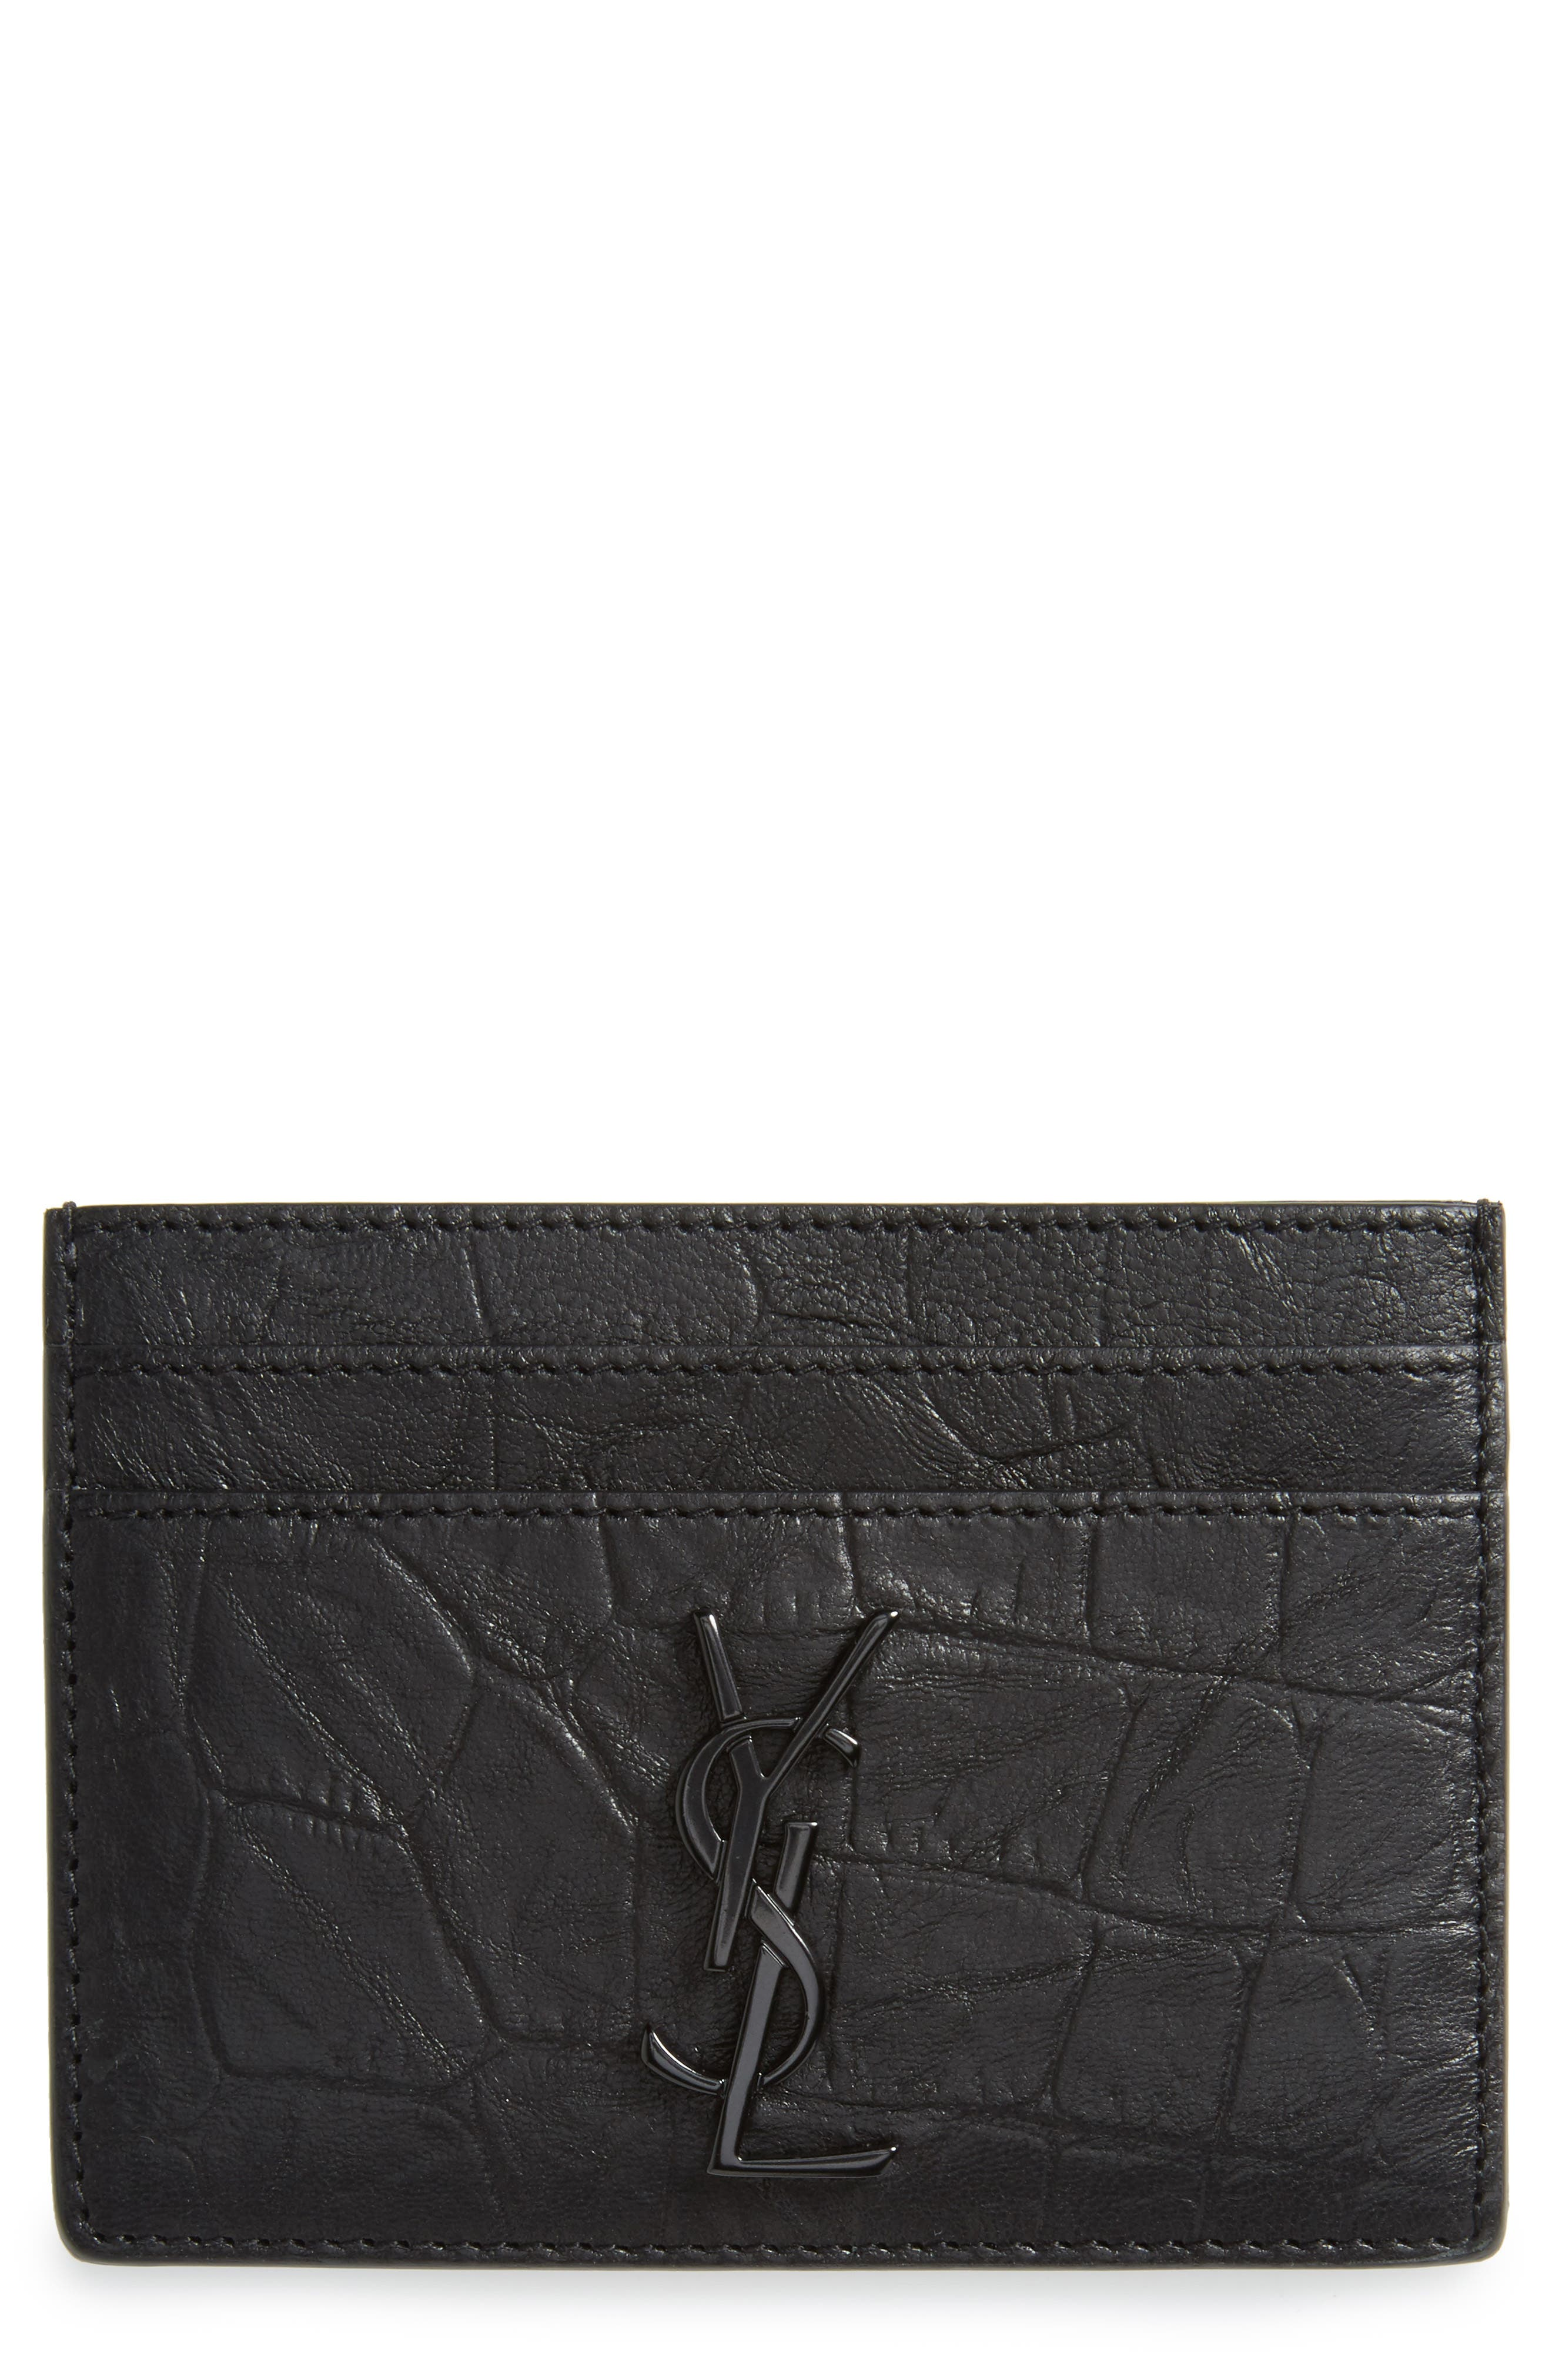 Croc Embossed Calfskin Leather Card Case,                             Main thumbnail 1, color,                             001